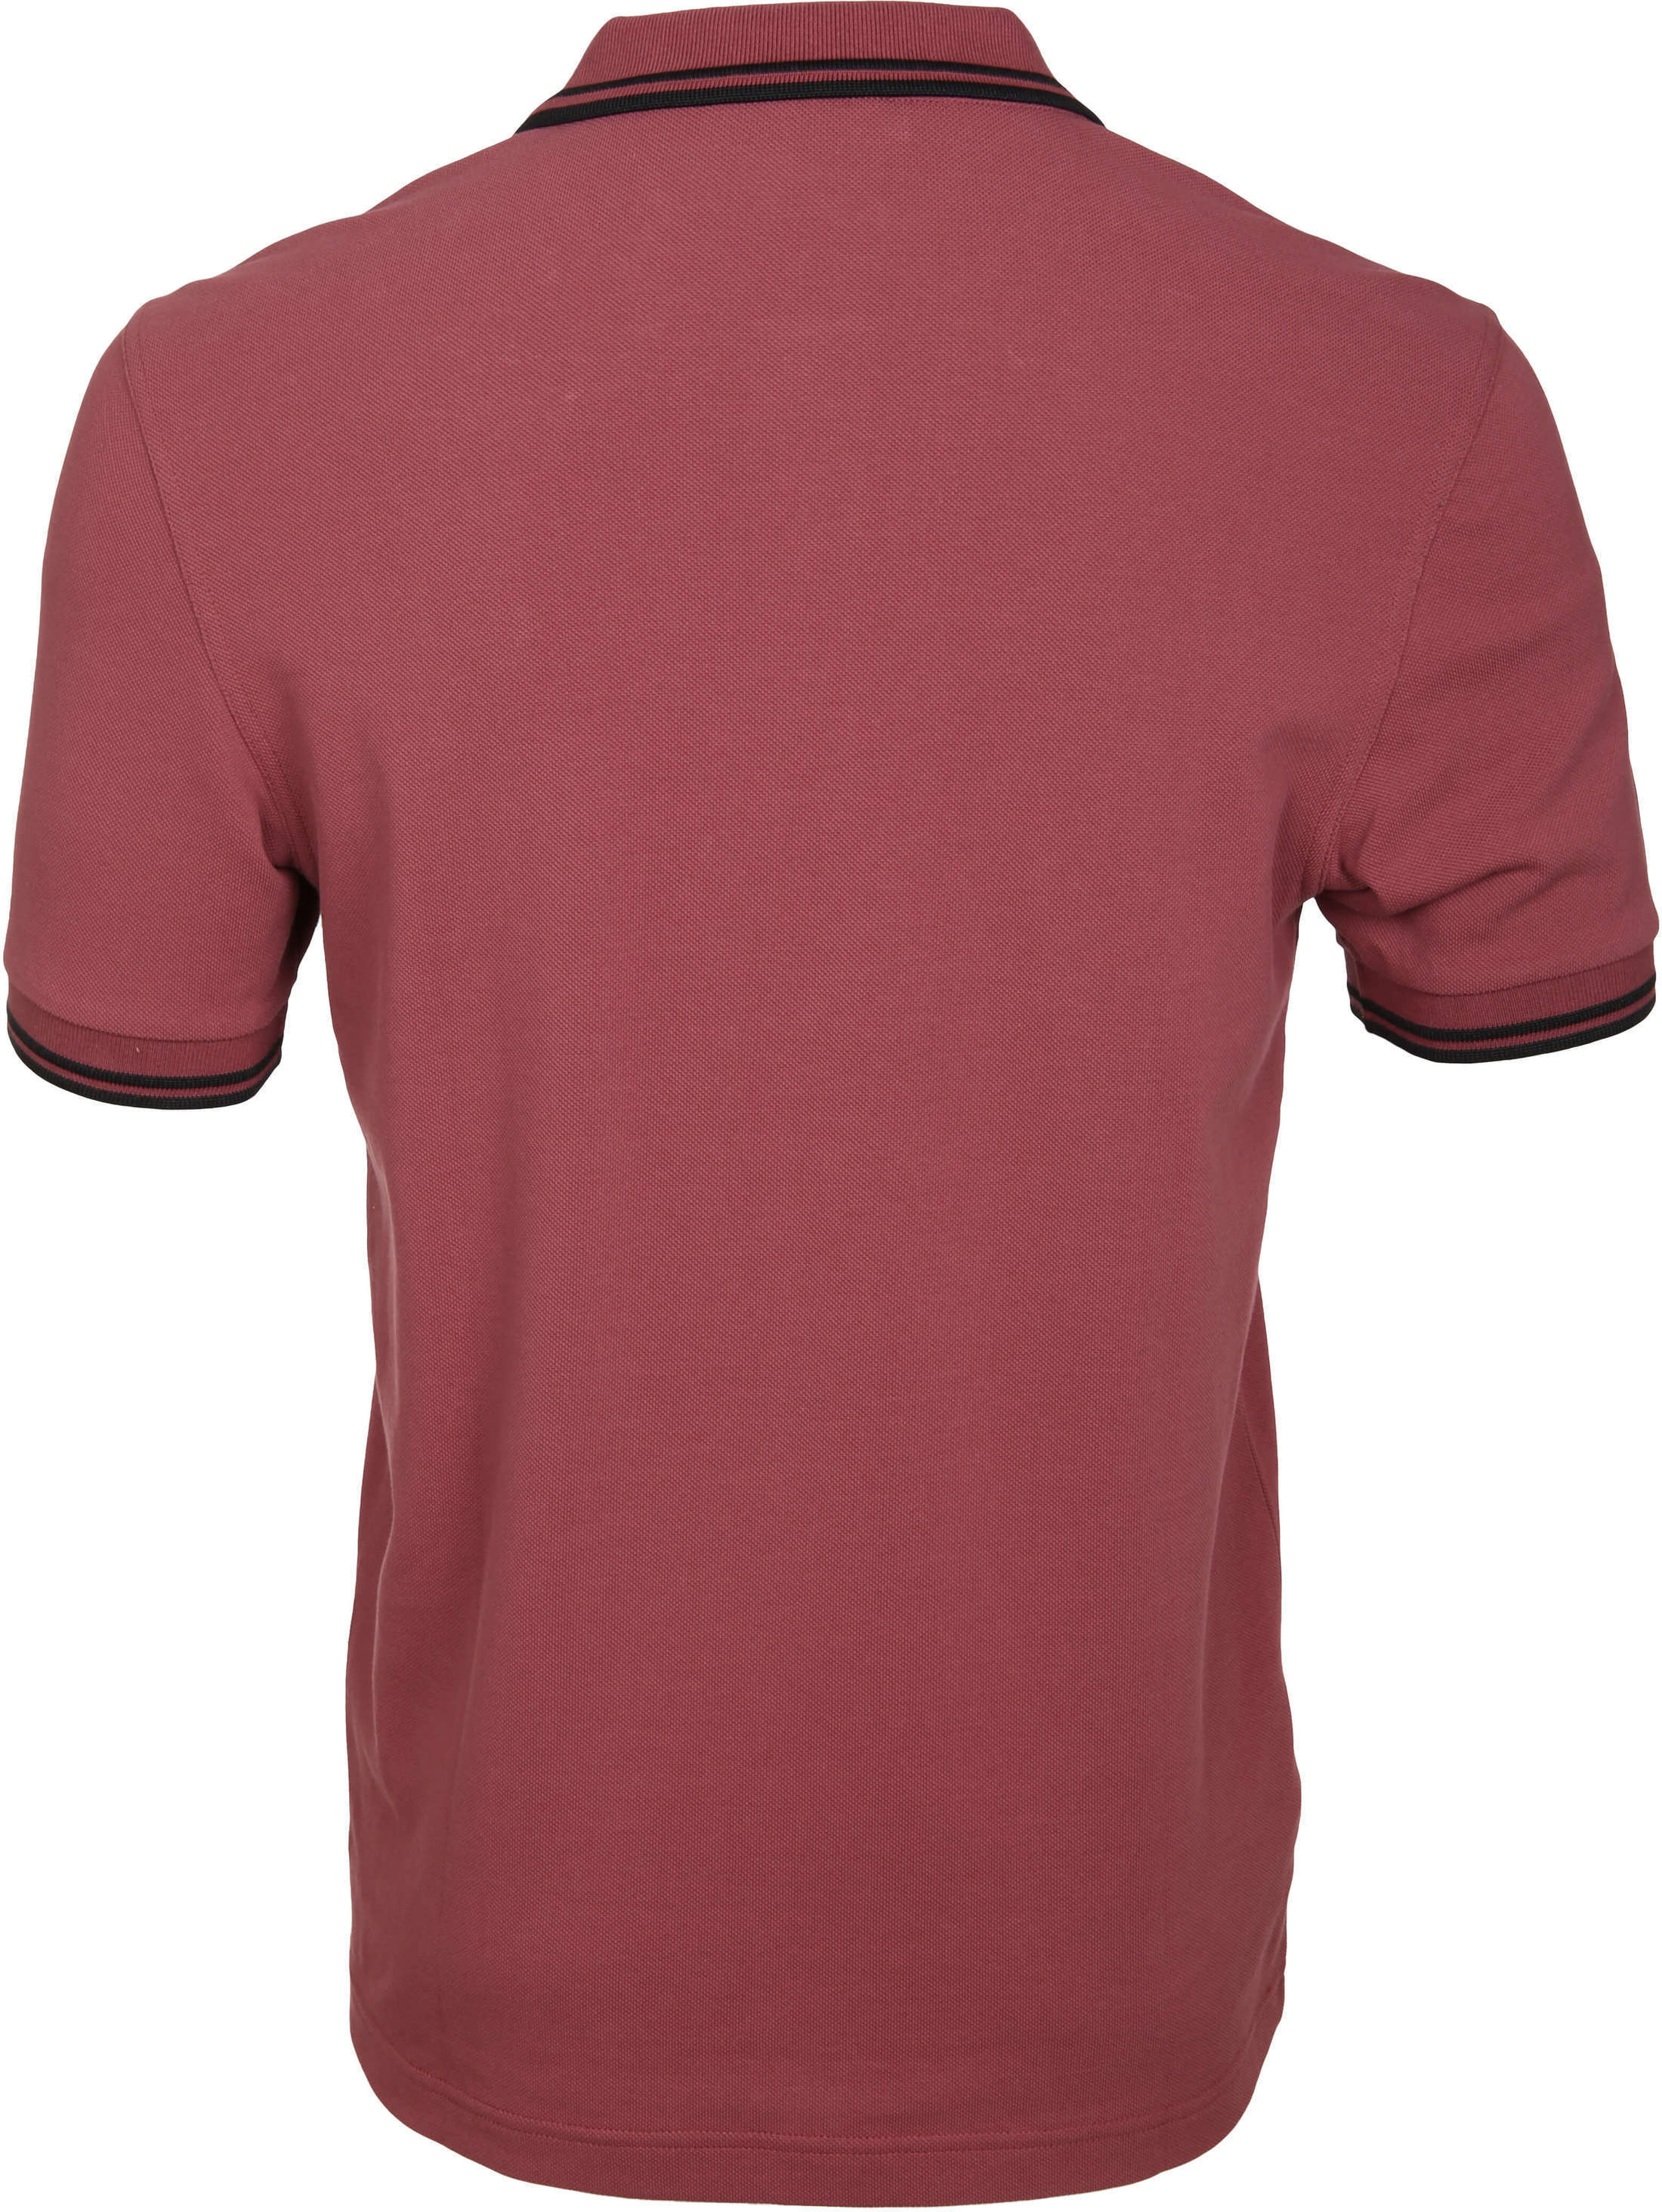 Fred Perry Poloshirt G36 Red foto 2